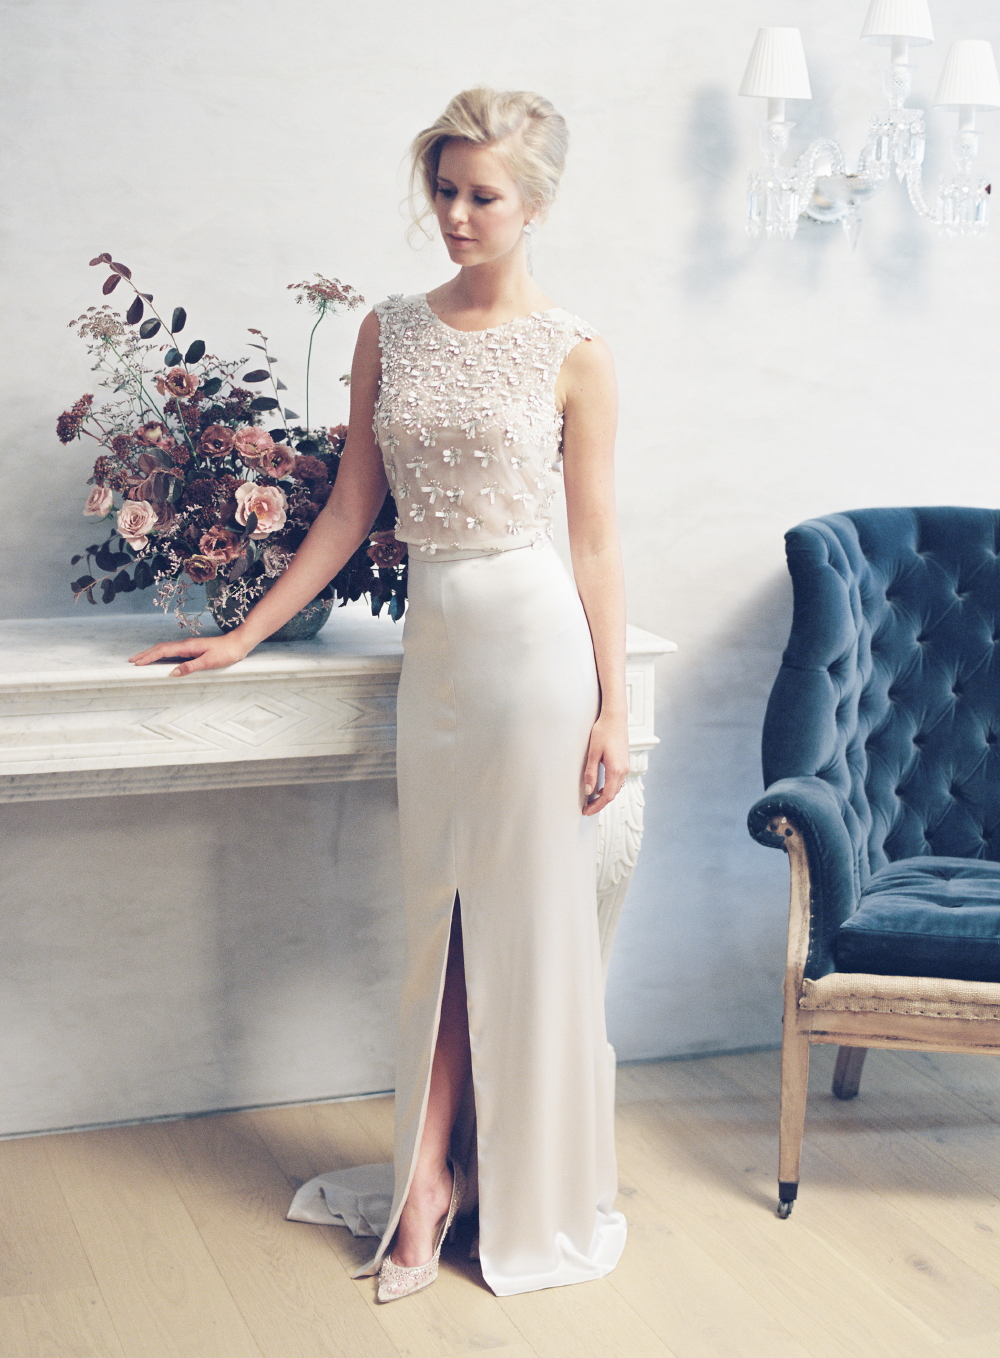 Alina bridal gown by Tanya Anic